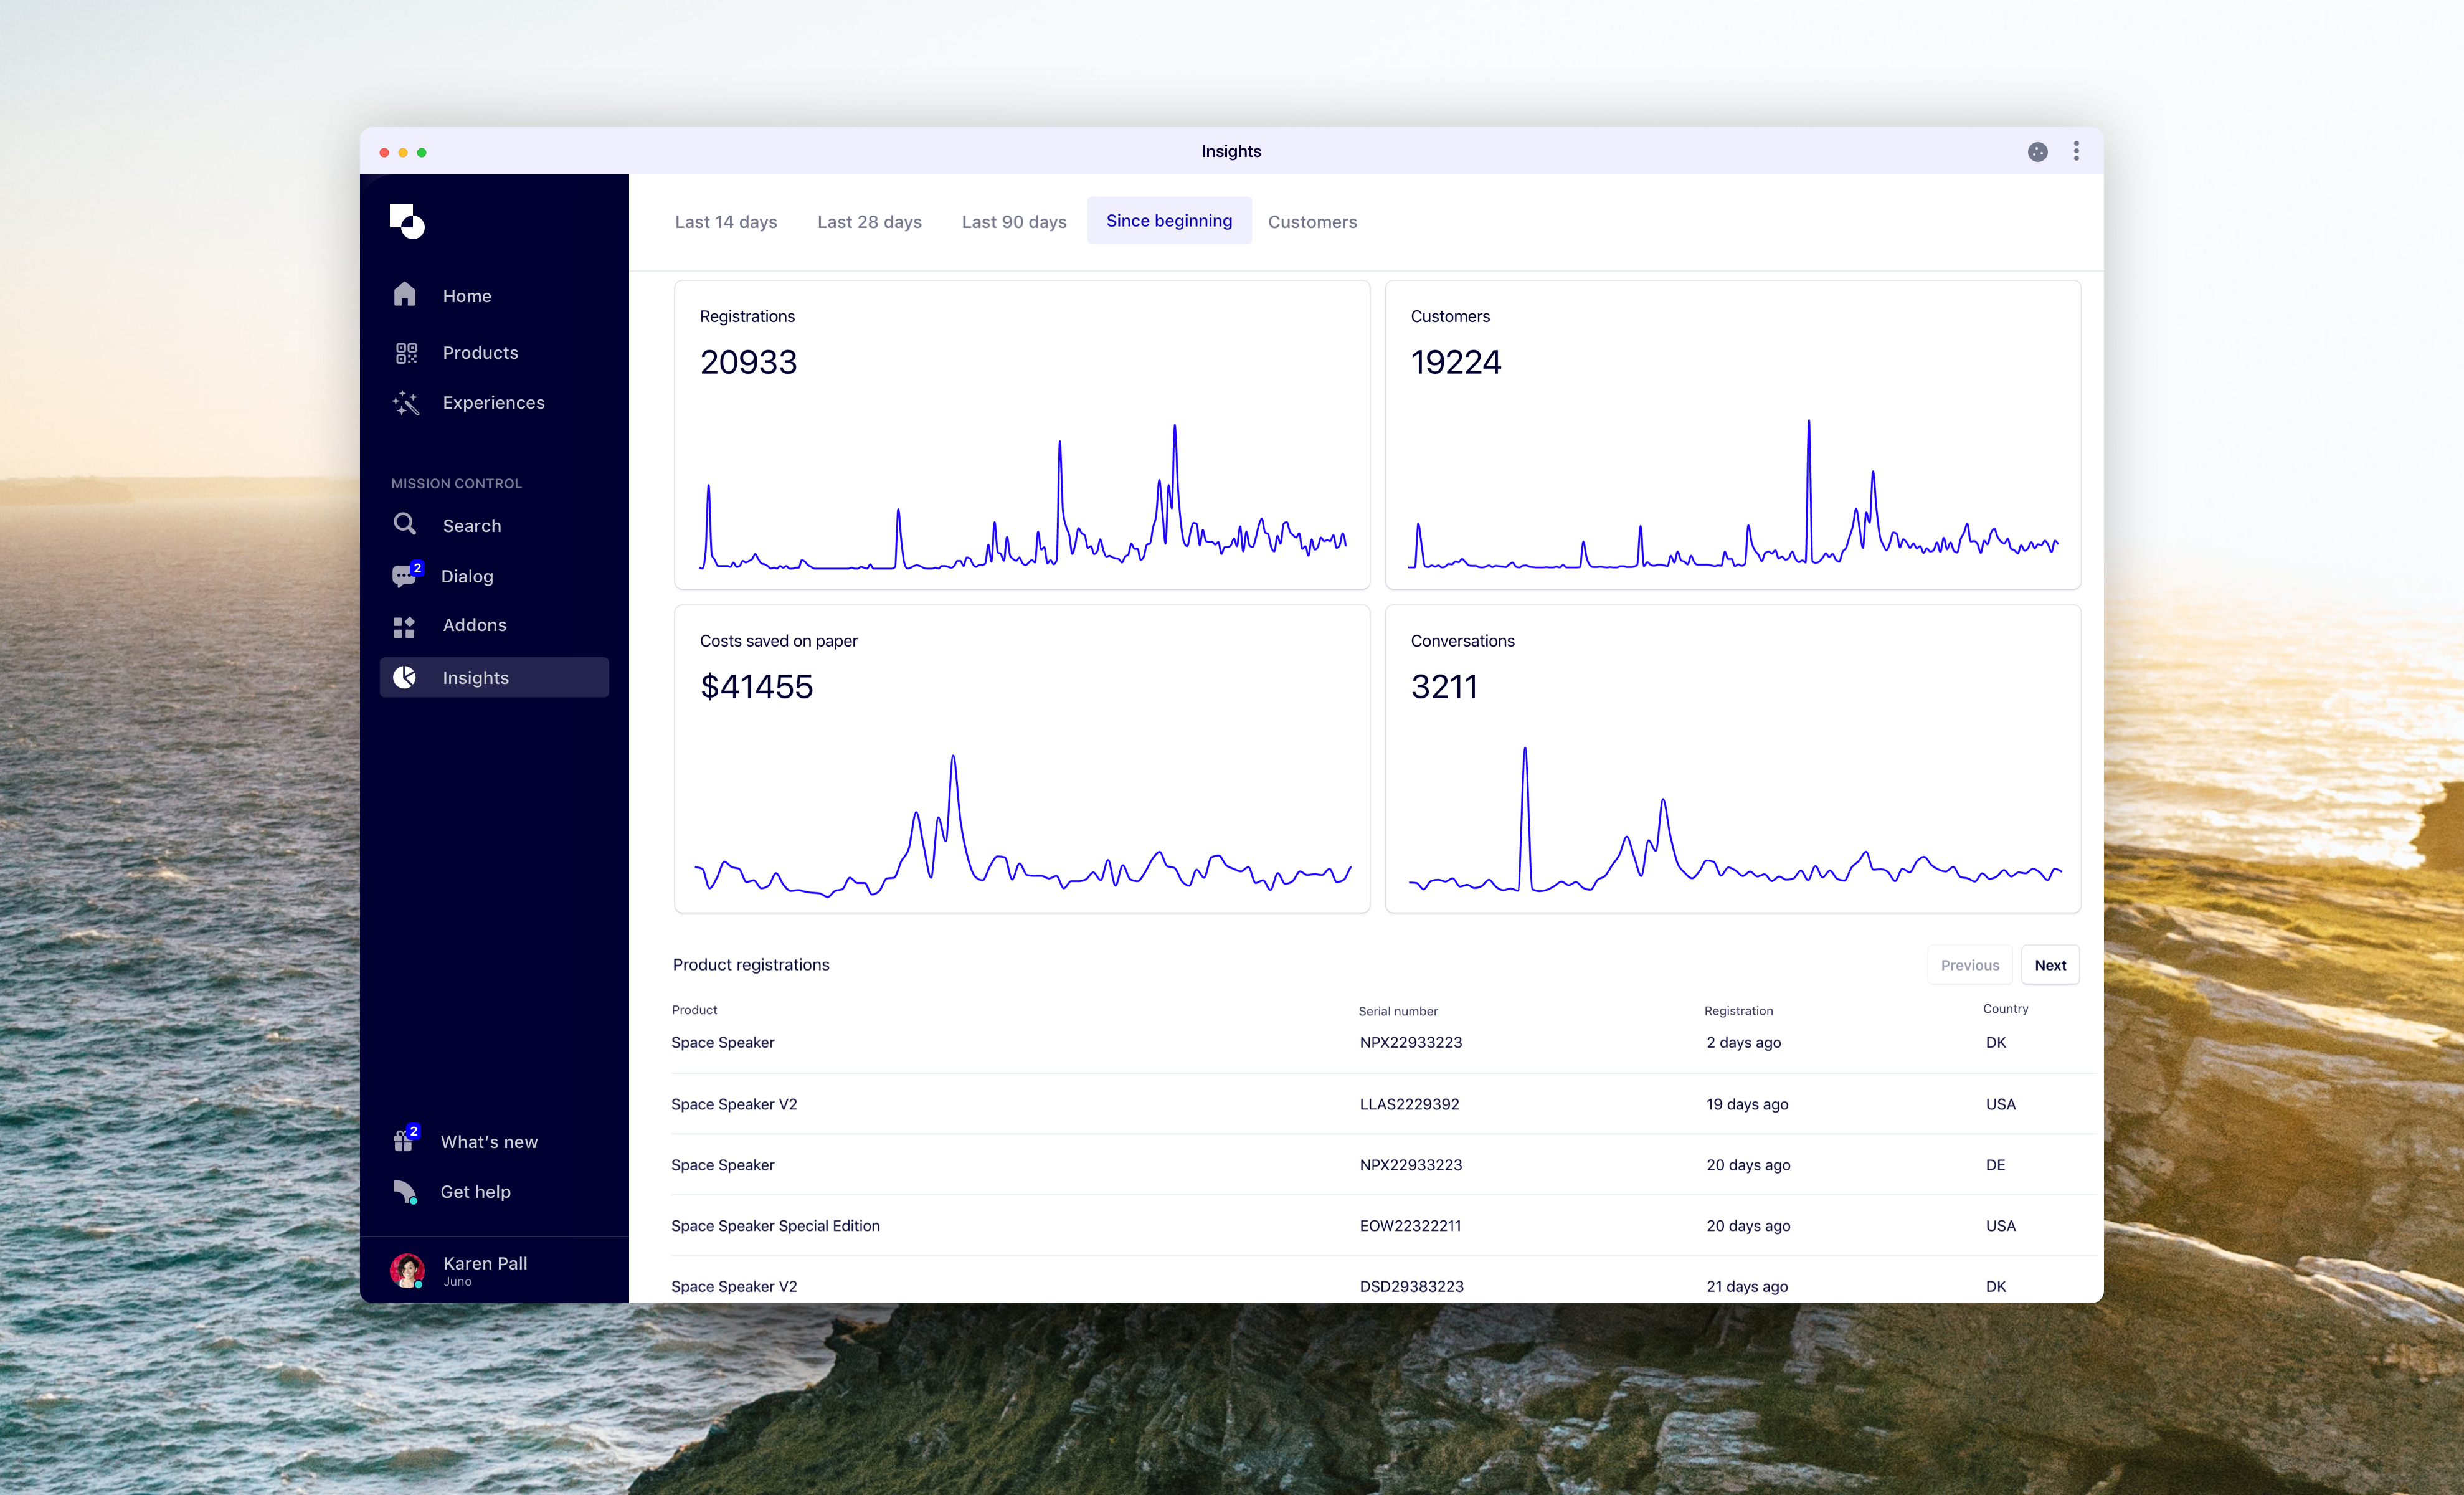 Better insights - Product Announcements